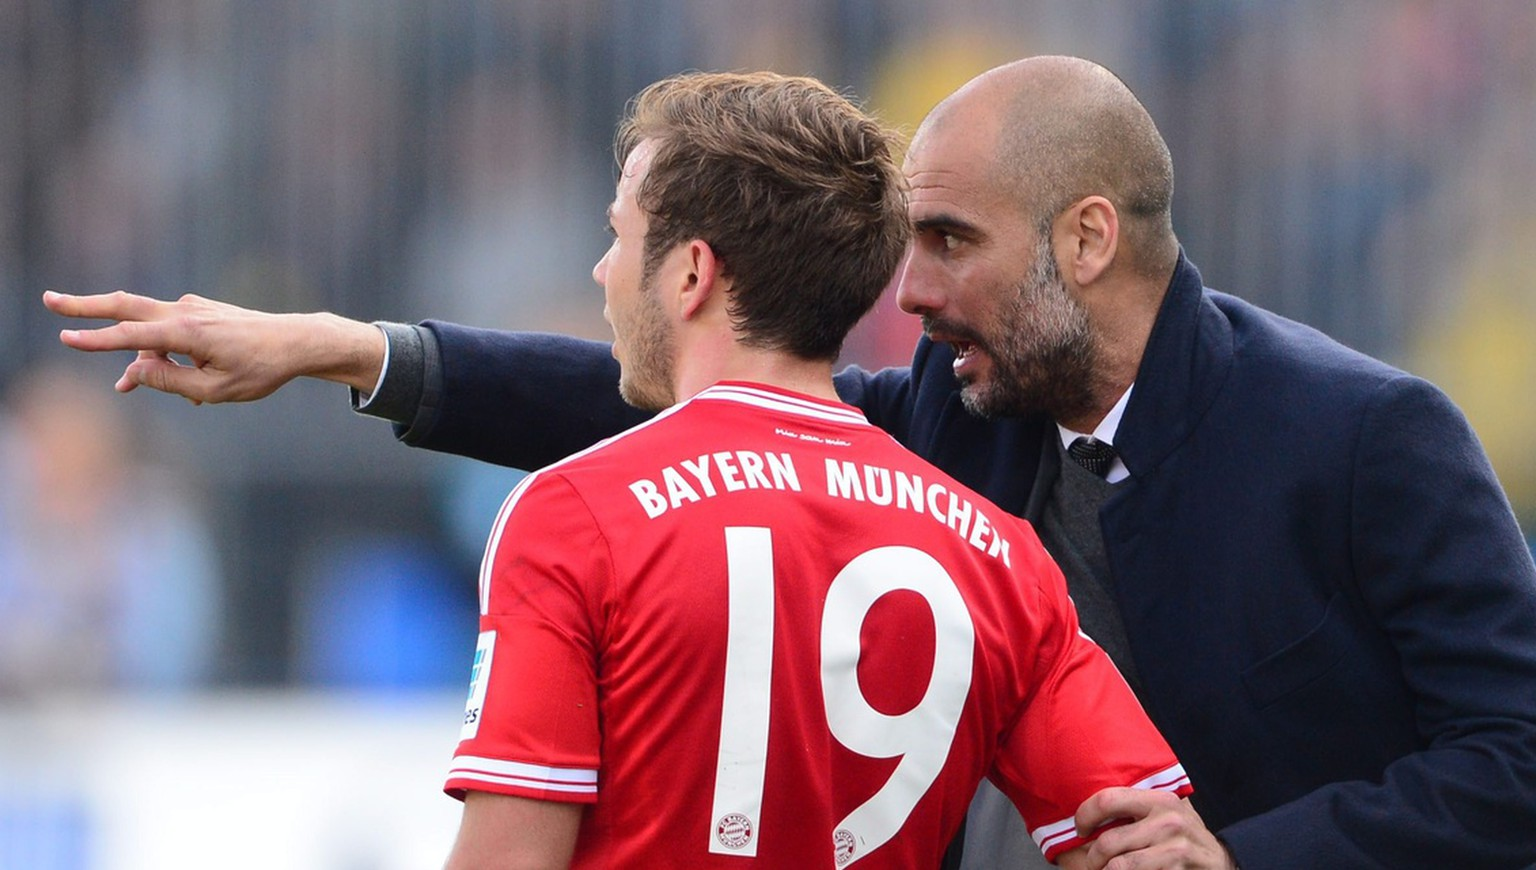 epa04172706 Munich's head coach Pep Guardiola (R) talks to his player Mario Goetze during the German Bundesliga soccer match between Eintracht Braunschweig and FC Bayern Munich at Eintracht Stadium in Braunschweig, Germany, 19 April 2014. ..(ATTENTION: Due to the accreditation guidelines, the DFL only permits the publication and utilisation of up to 15 pictures per match on the internet and in online media during the match.)  EPA/PETER STEFFEN